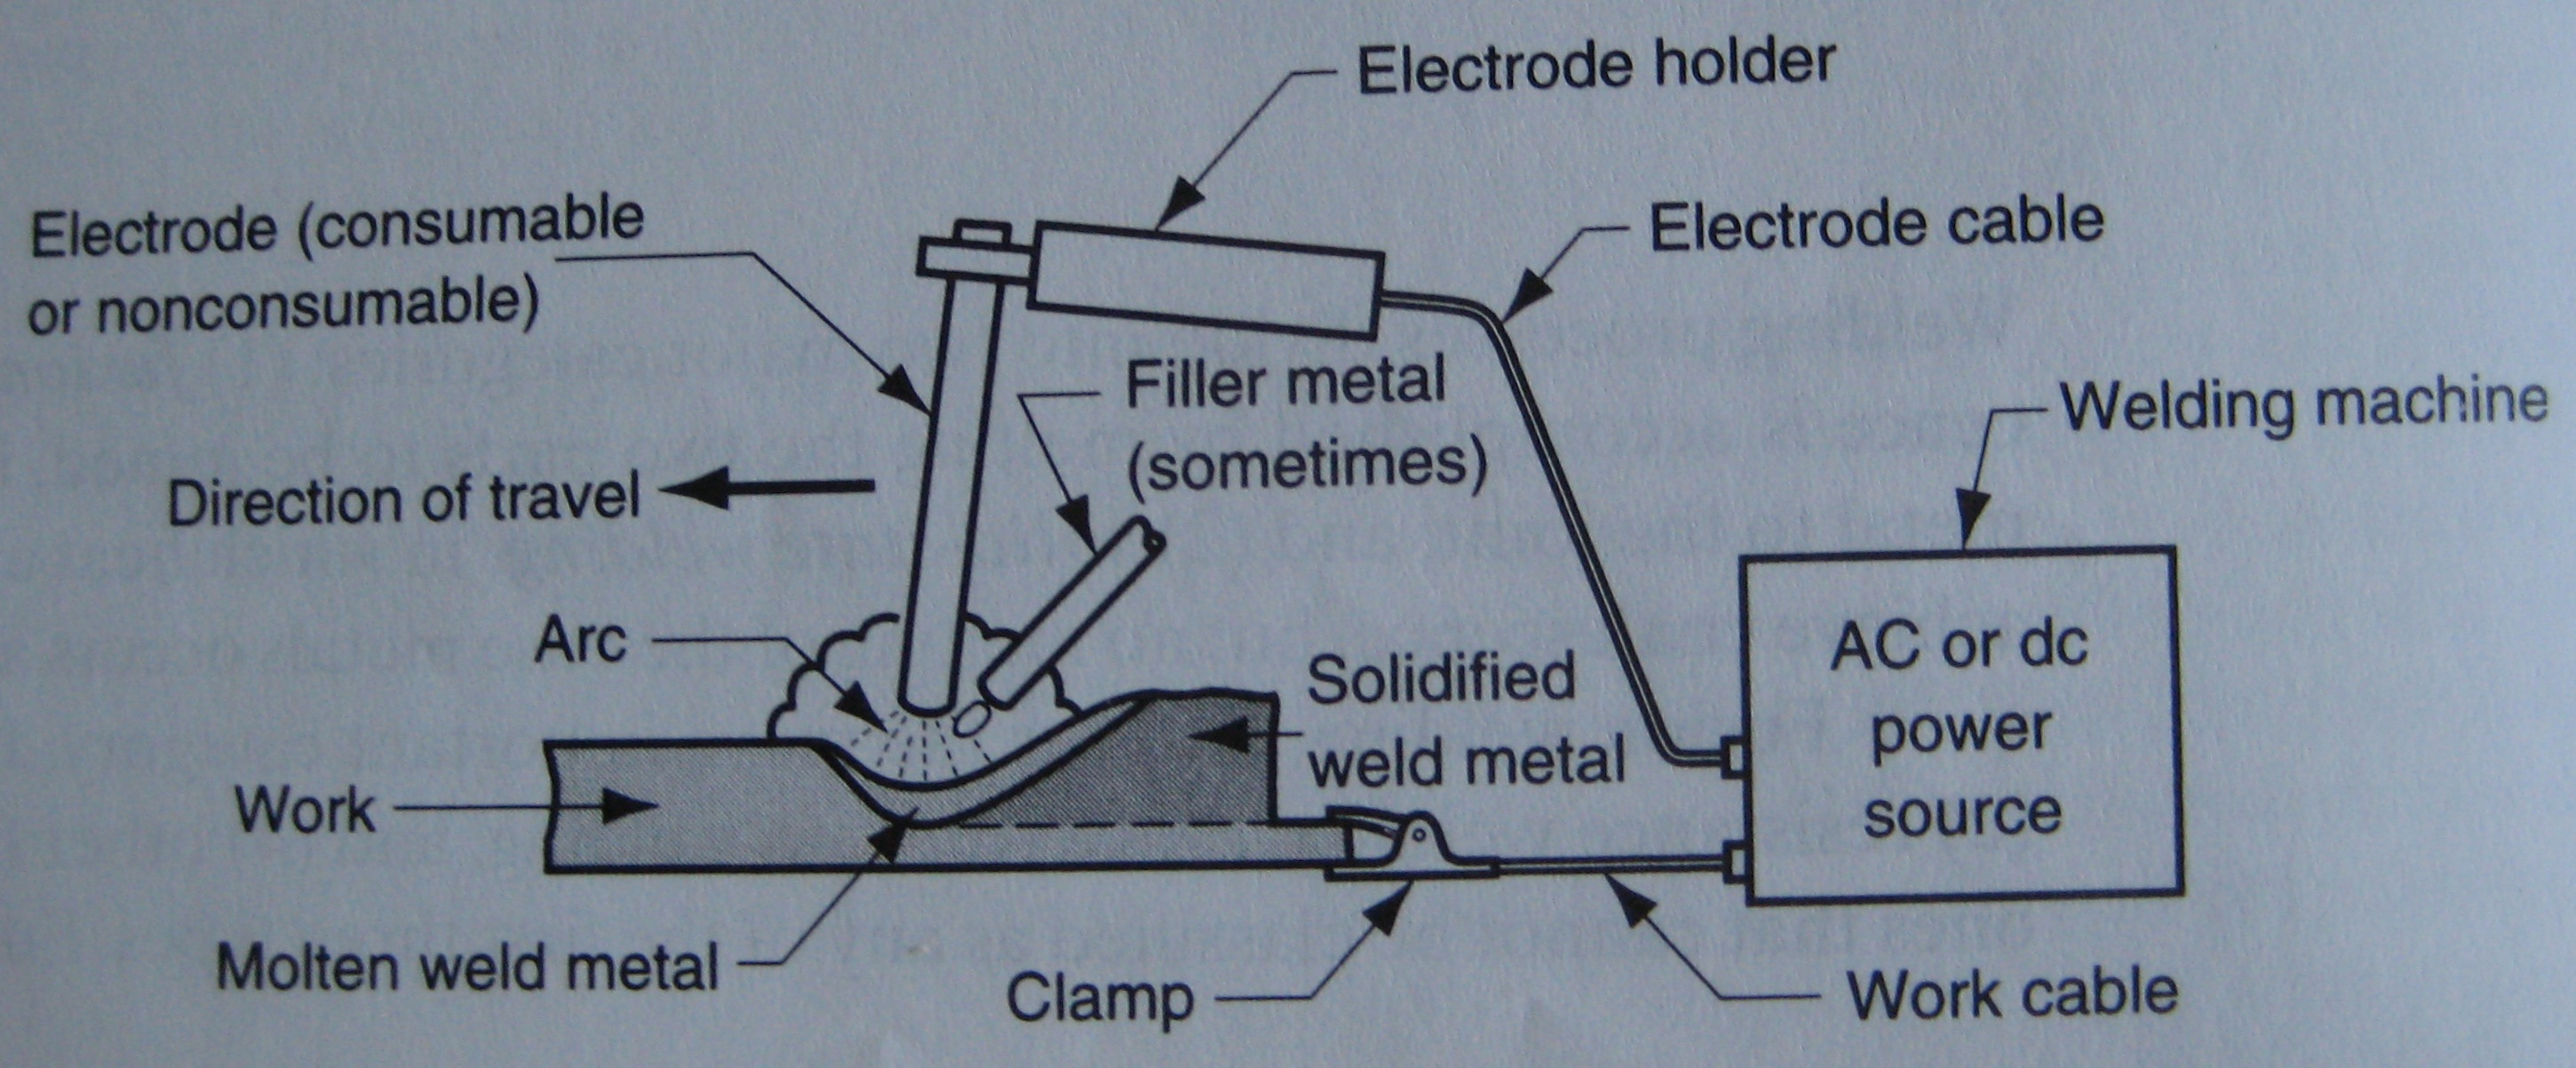 Welding Setup Diagram Wiring Library Machine Most